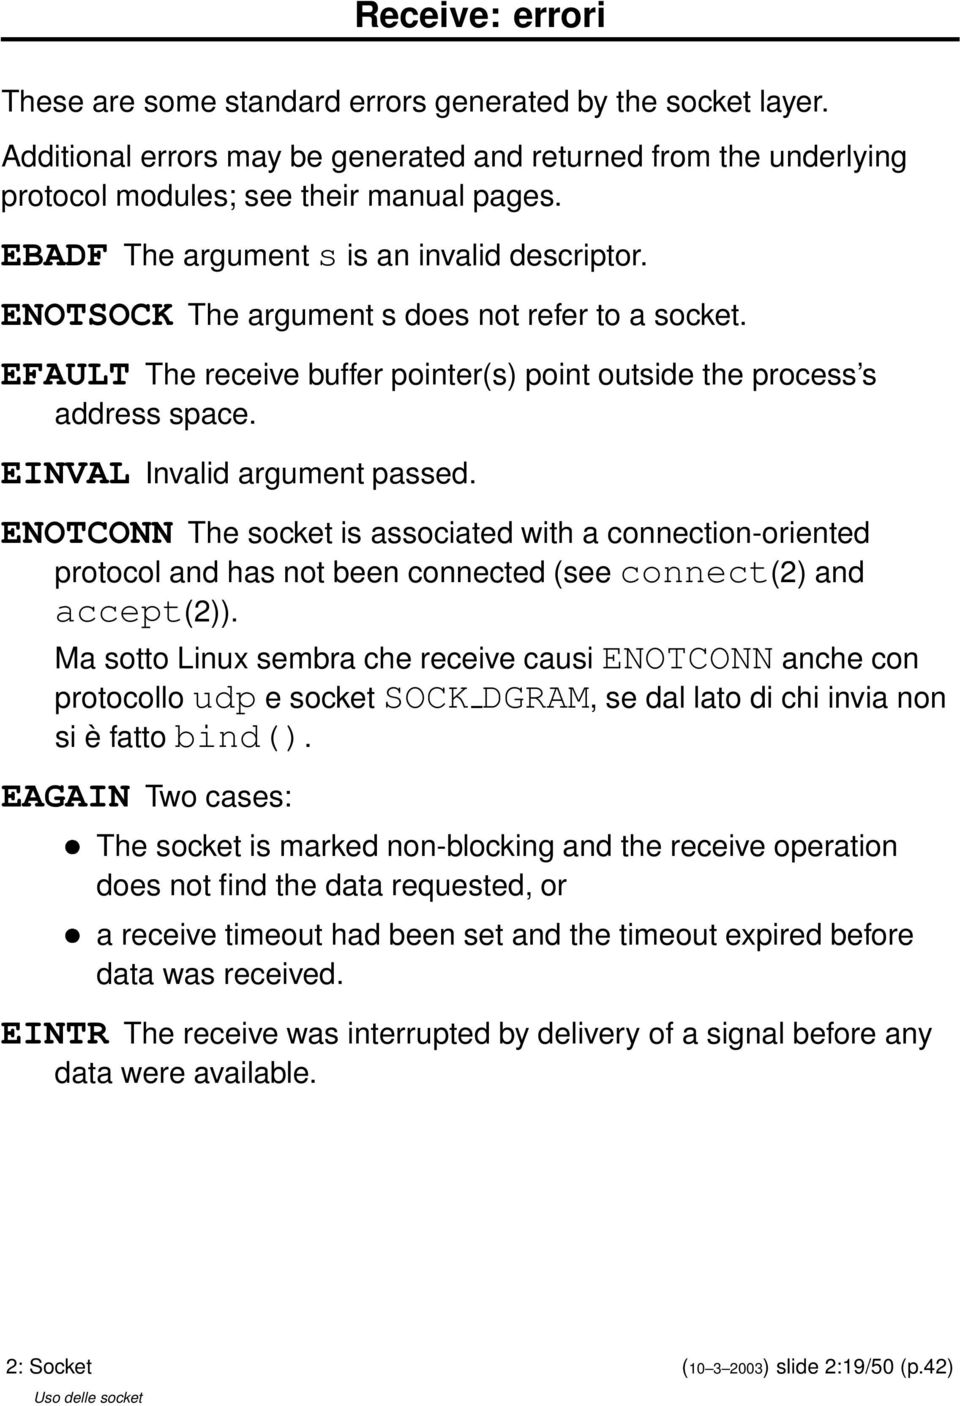 EINVAL Invalid argument passed. ENOTCONN The socket is associated with a connection-oriented protocol and has not been connected (see connect(2) and accept(2)).